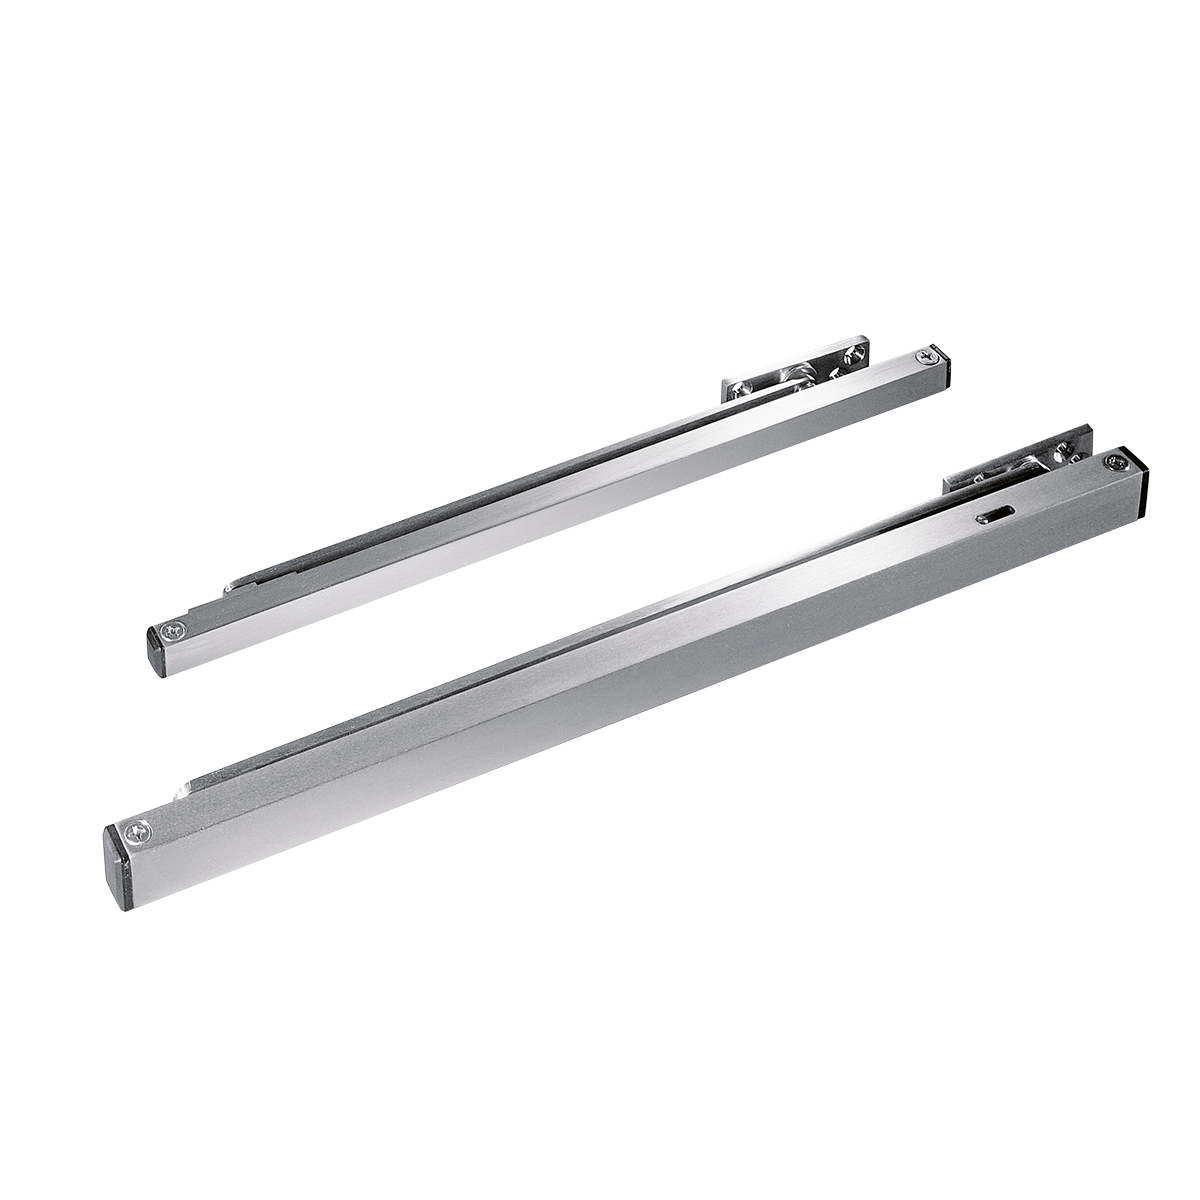 Dorma 700 900 Series Stops And Holders F Stop Icu Gate 1200x1200